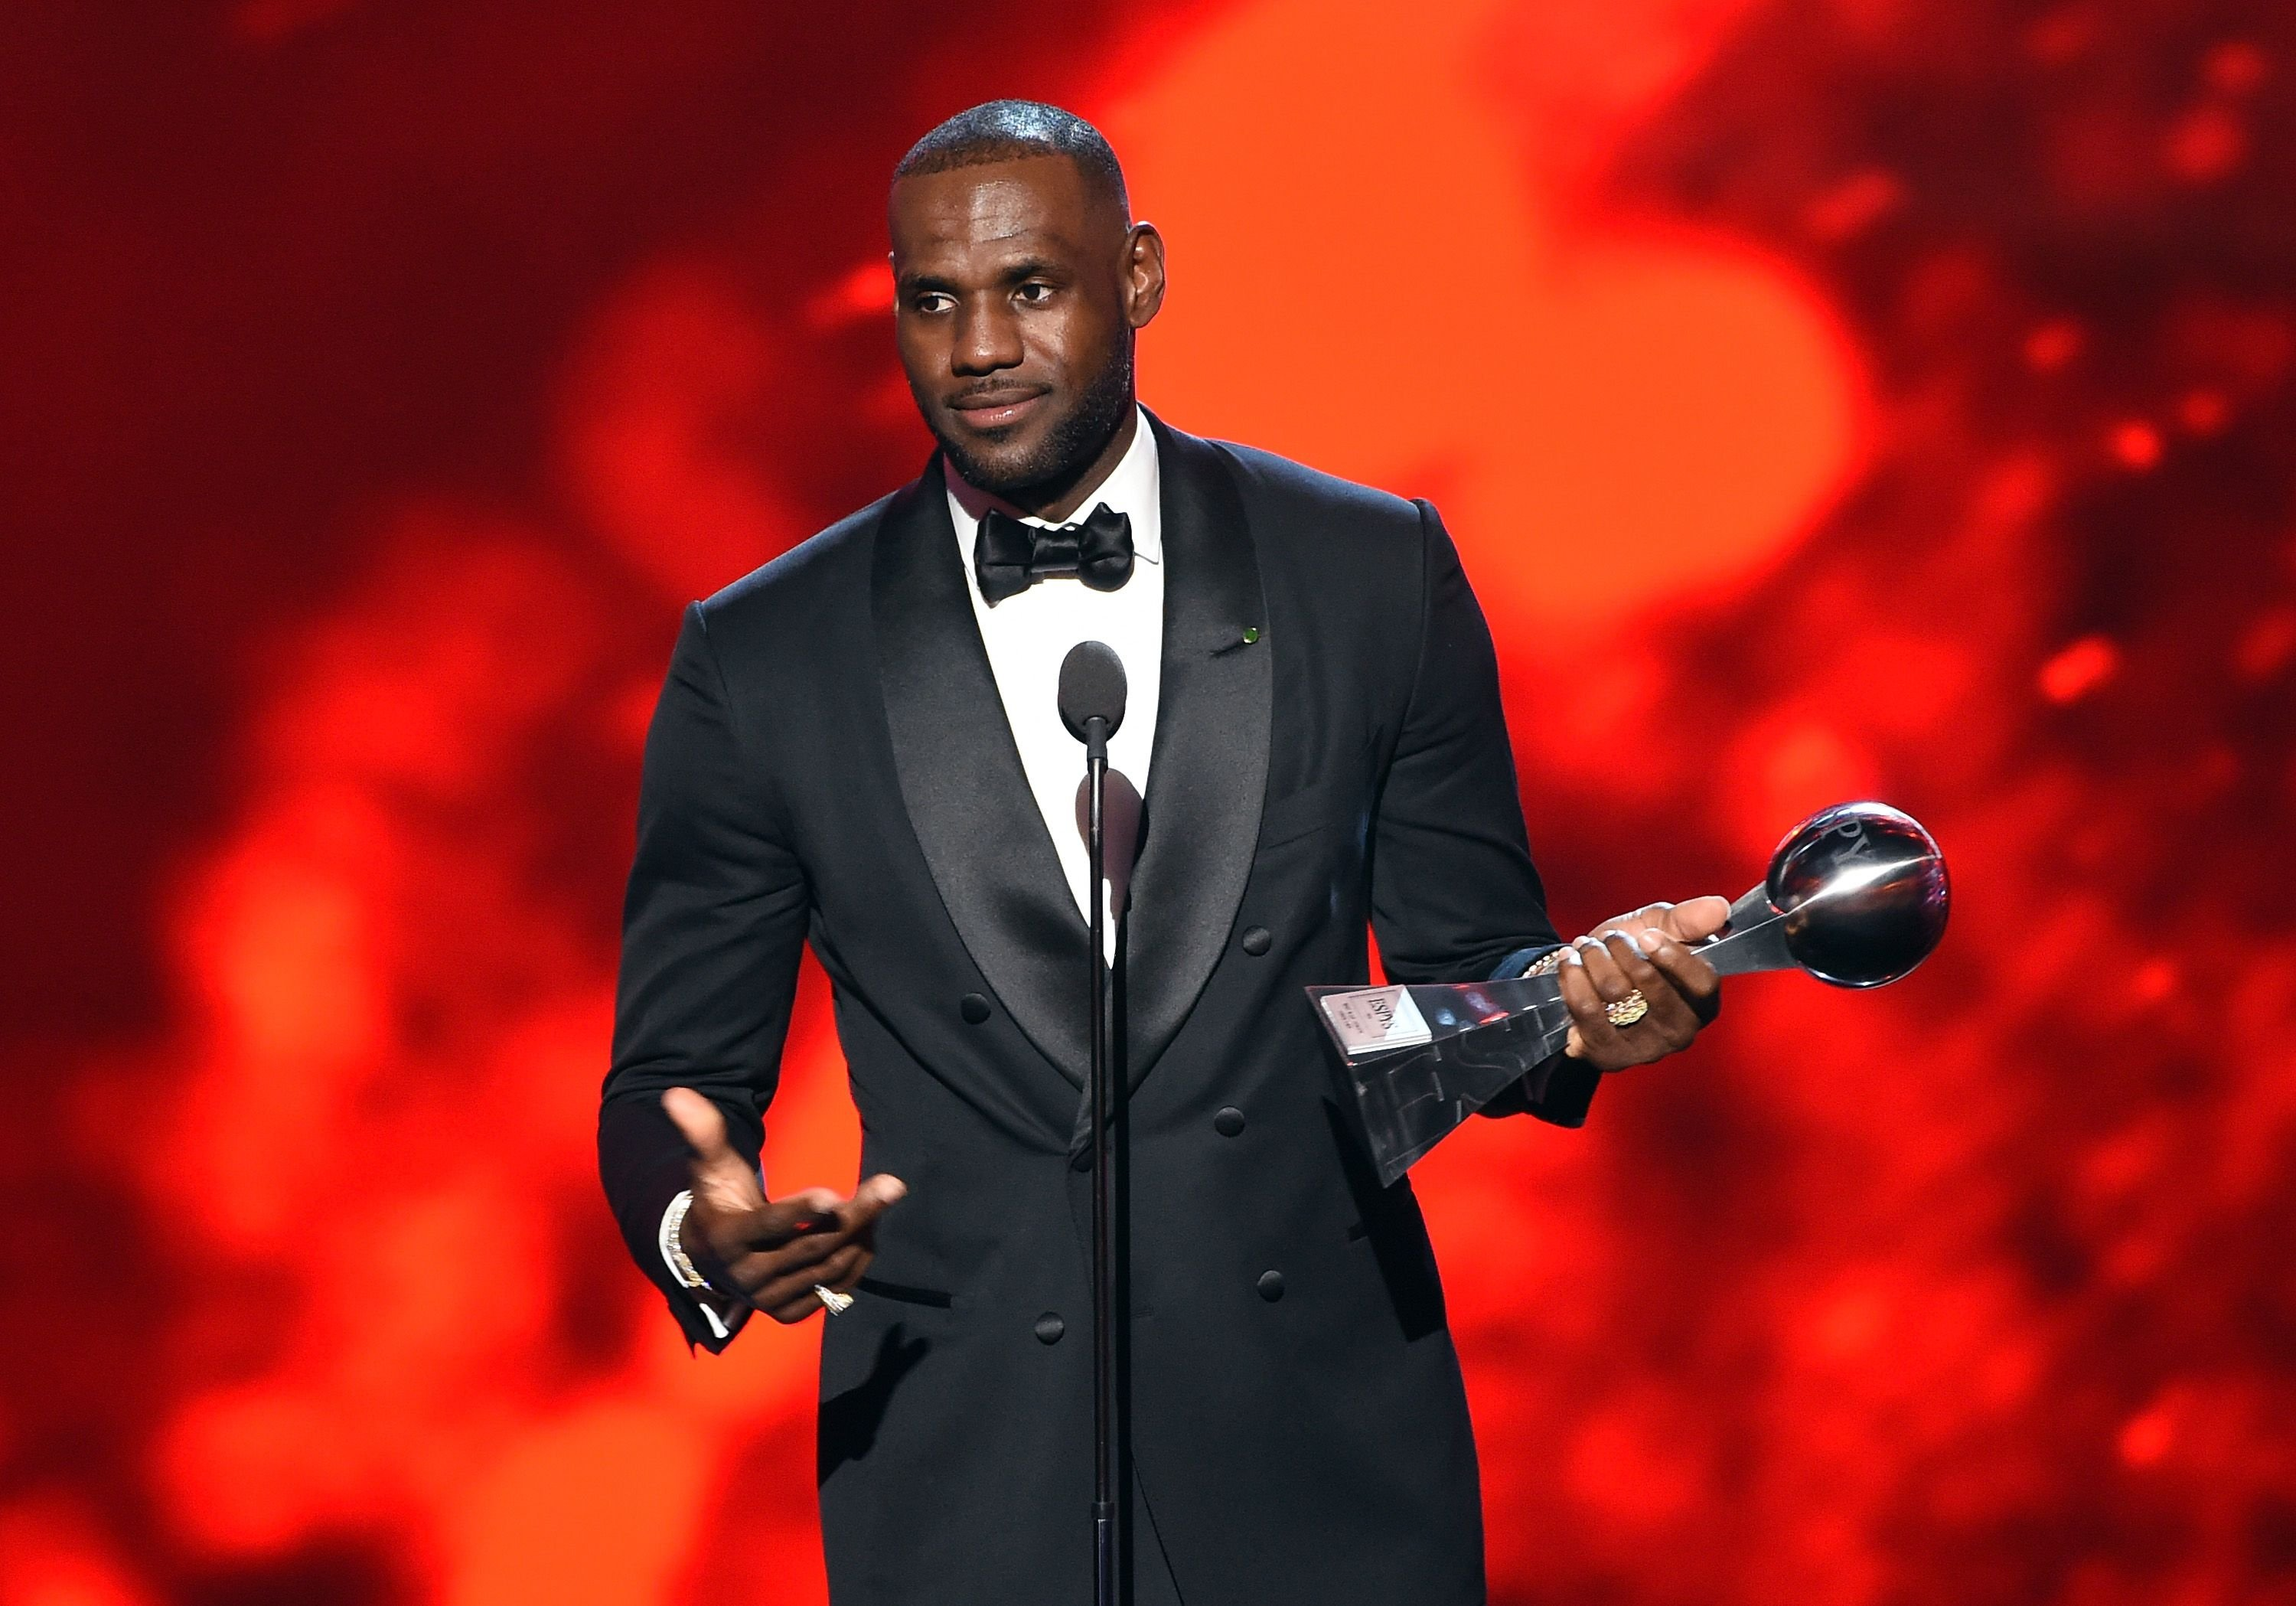 LeBron James accepted the Best Male Athlete award onstage during the 2016 ESPYS at Microsoft Theater on July 13, 2016 in Los Angeles, California | Photo: Getty Images